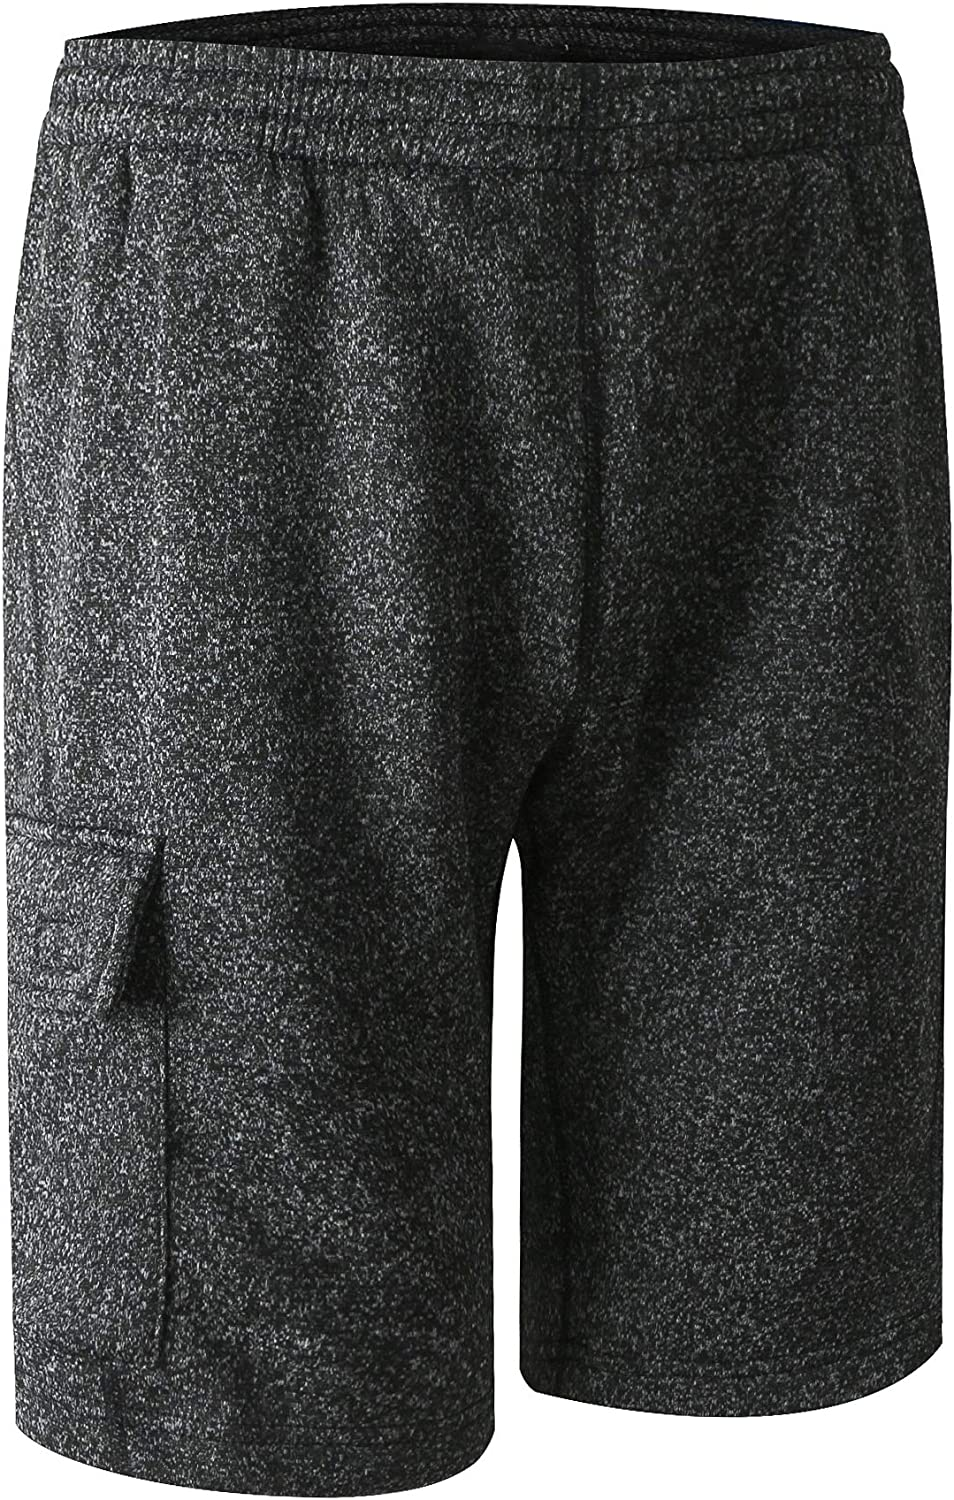 URBEX Mens Athletic Shorts with Drawstring Casual Short Sweat Pants for Gym Workout Sports